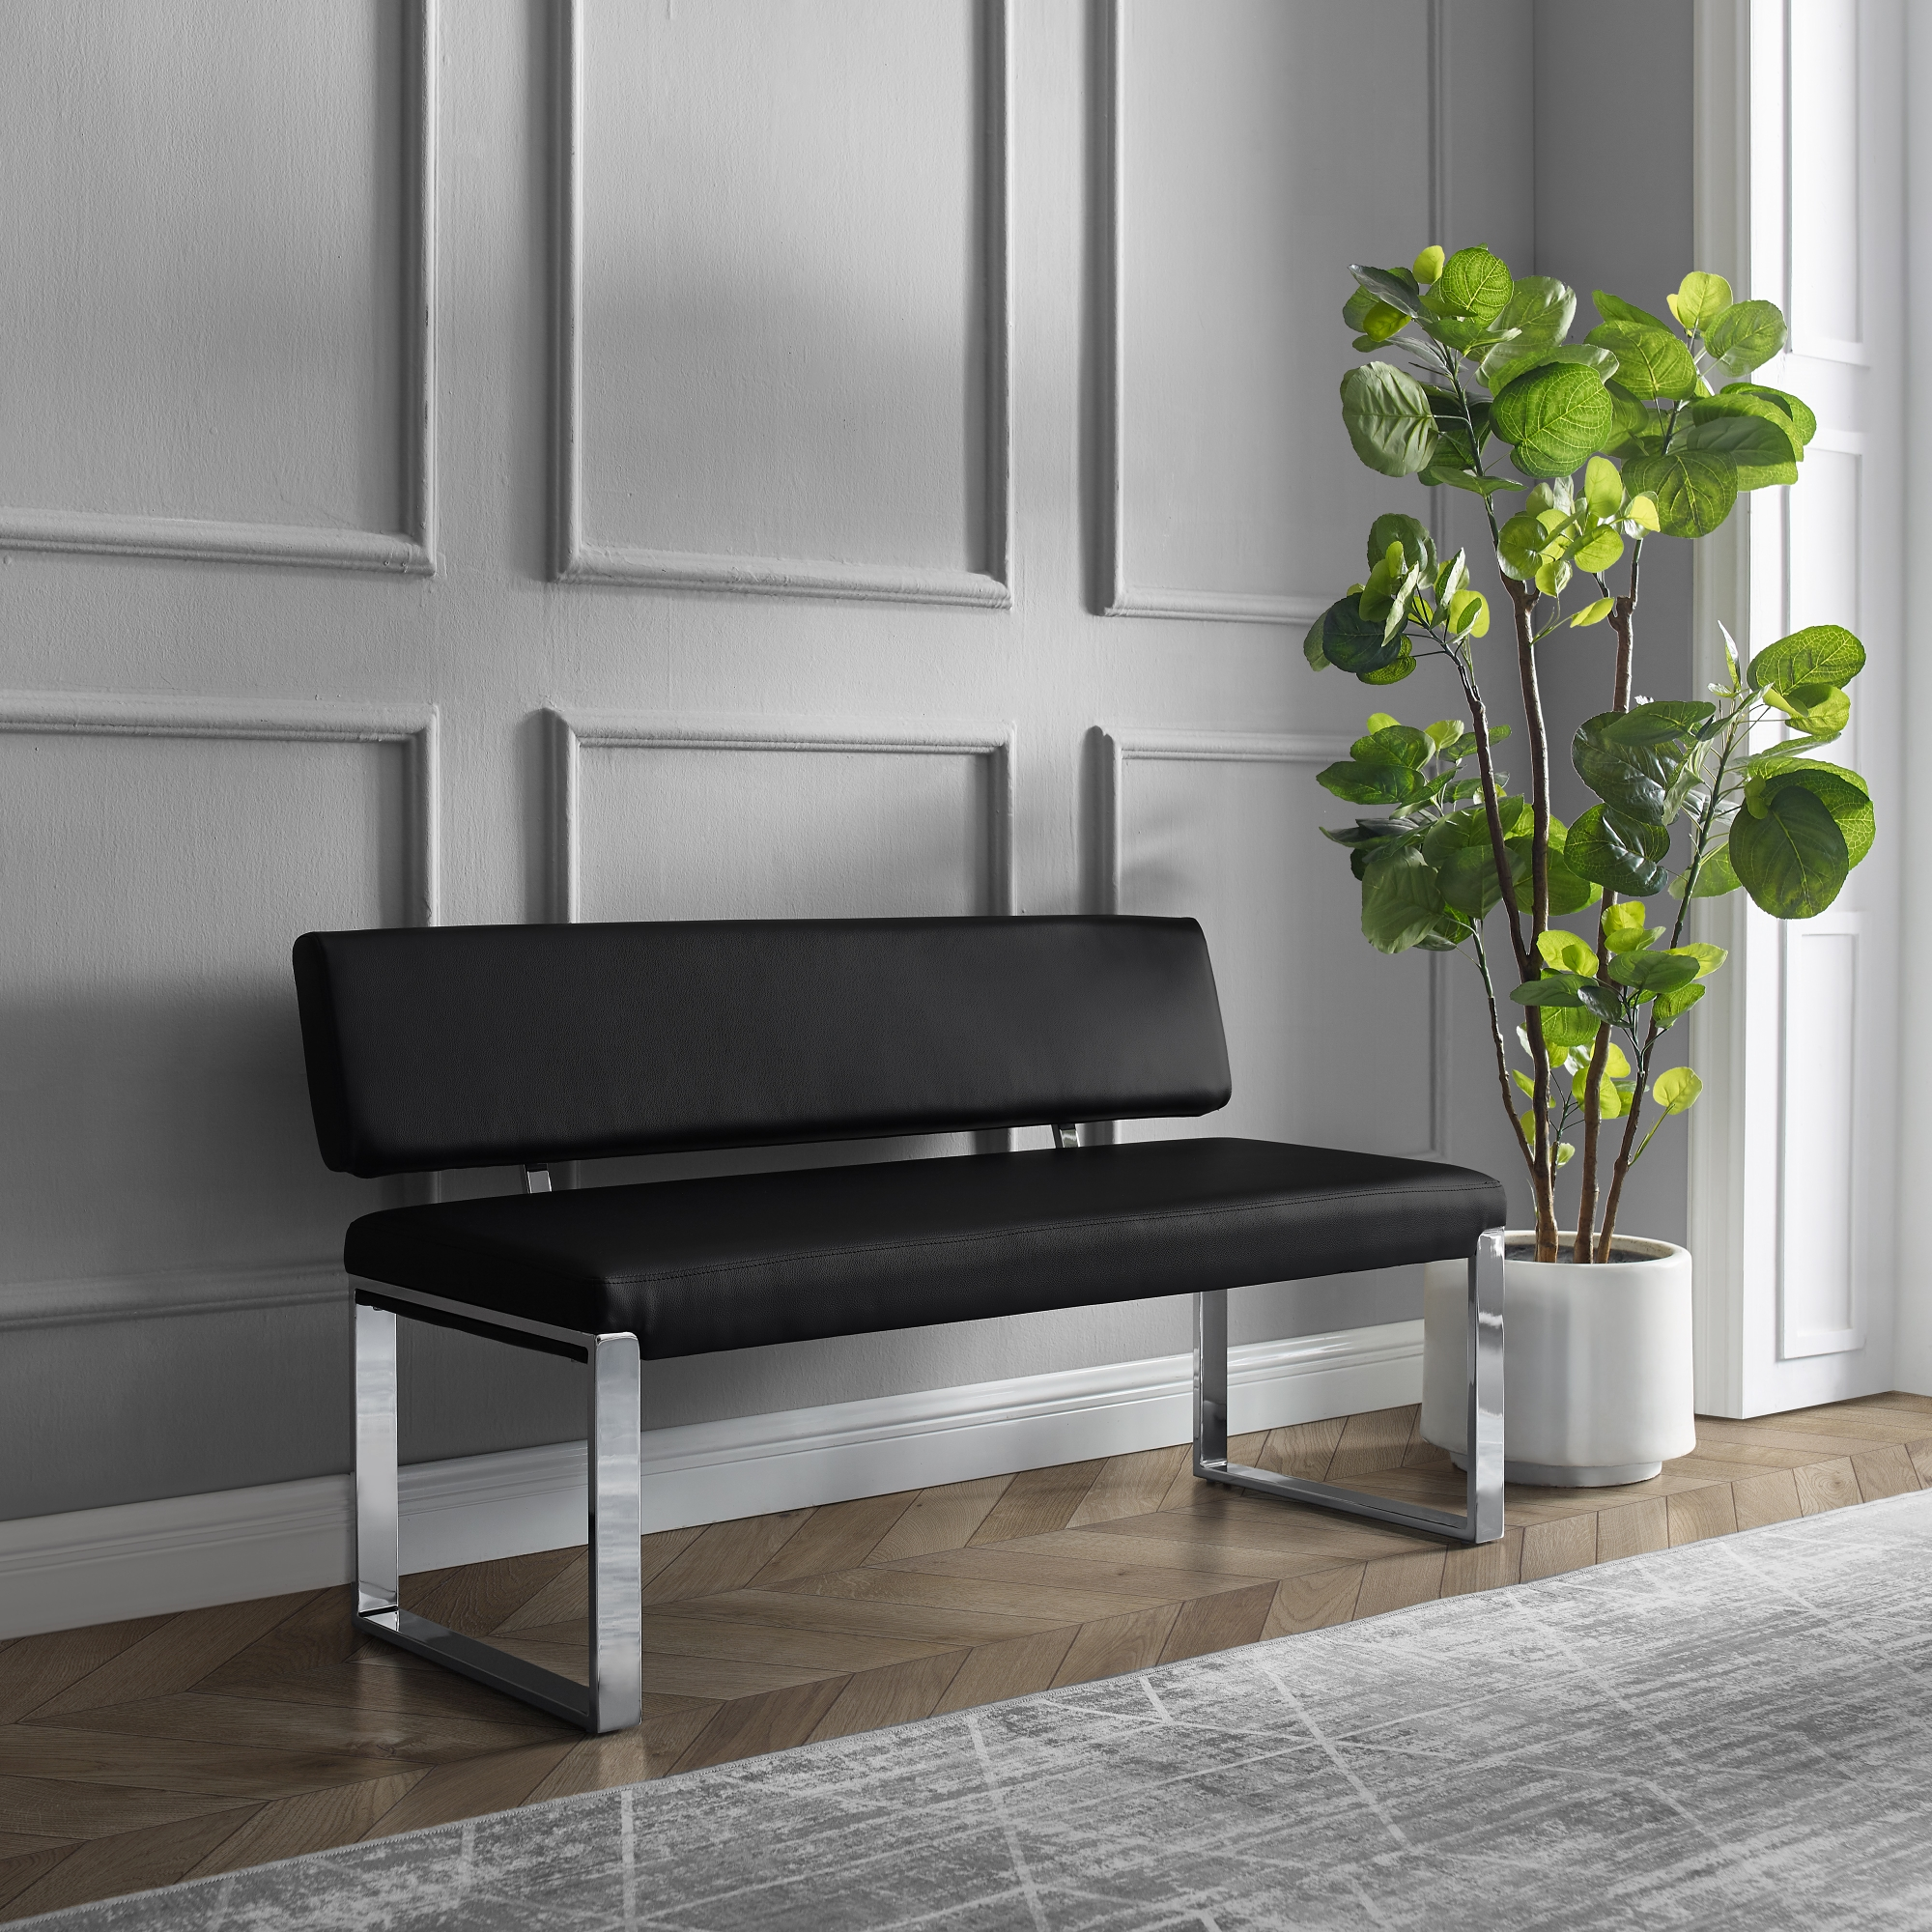 Inspired Home Black Leather PU Bench Upholstered Chrome Legs